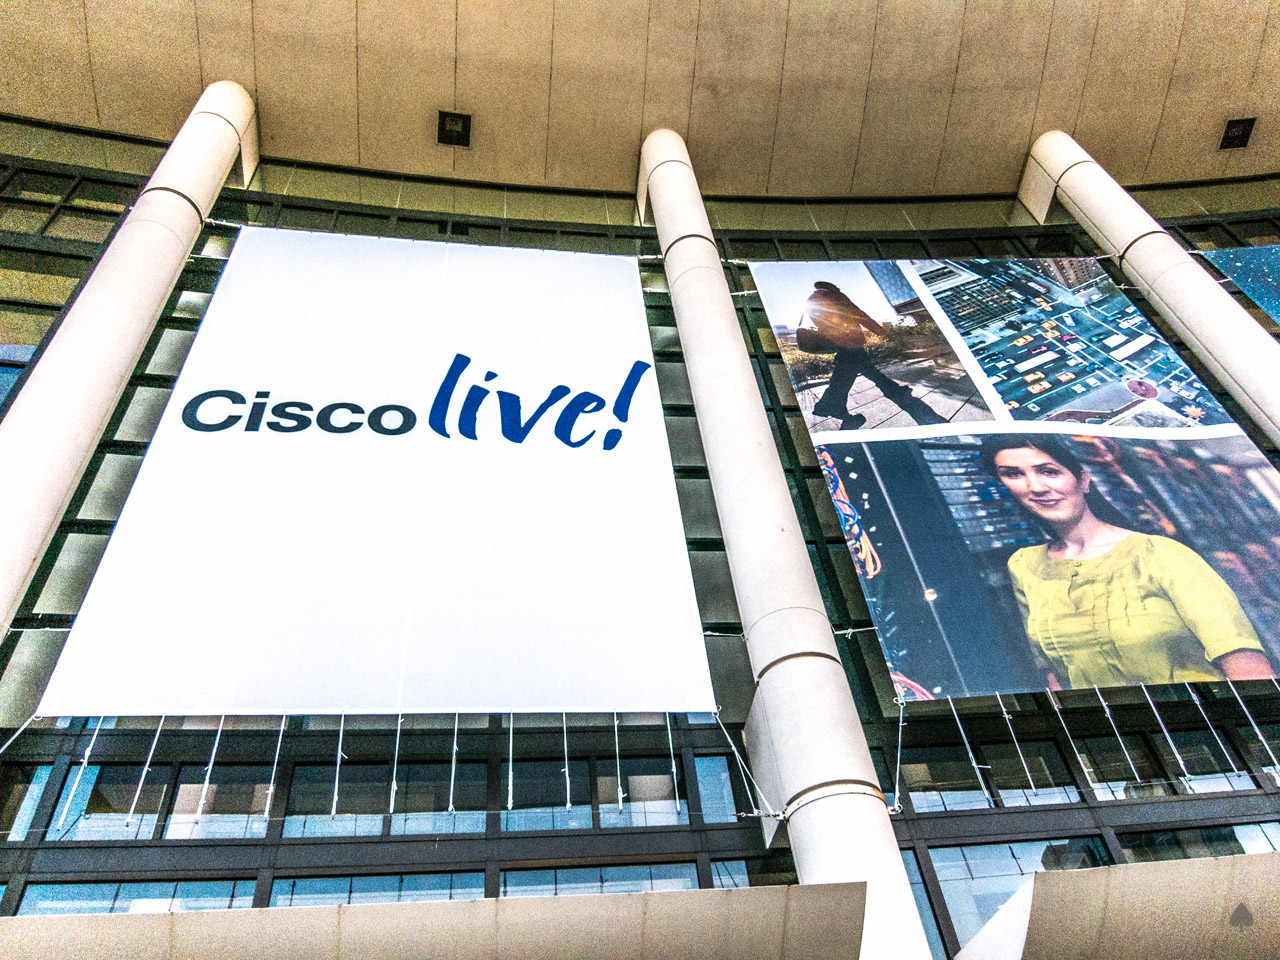 (Source: 'cisco-live-clus-2013-3249' by daspader, licensed under CC BY 2.0)